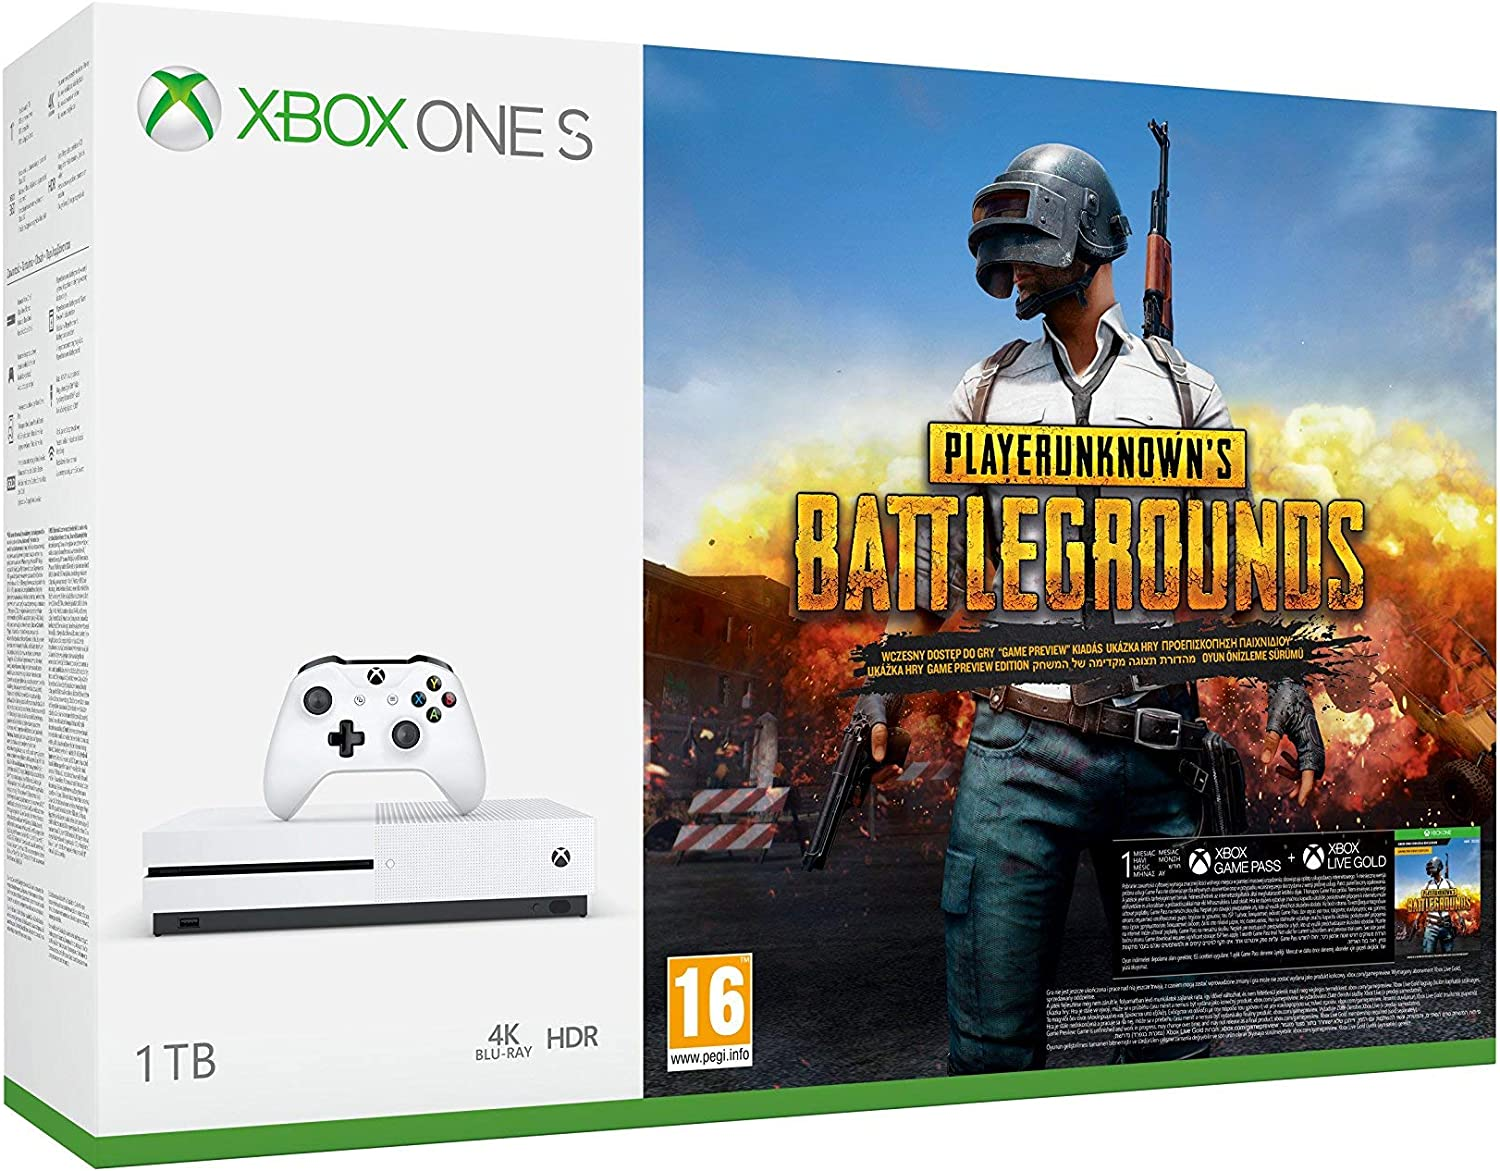 Microsoft Xbox One S - Consola 1 TB + Playerunknowns Battlegrounds + Red Dead Redemption 2 (Xbox One): Amazon.es: Videojuegos